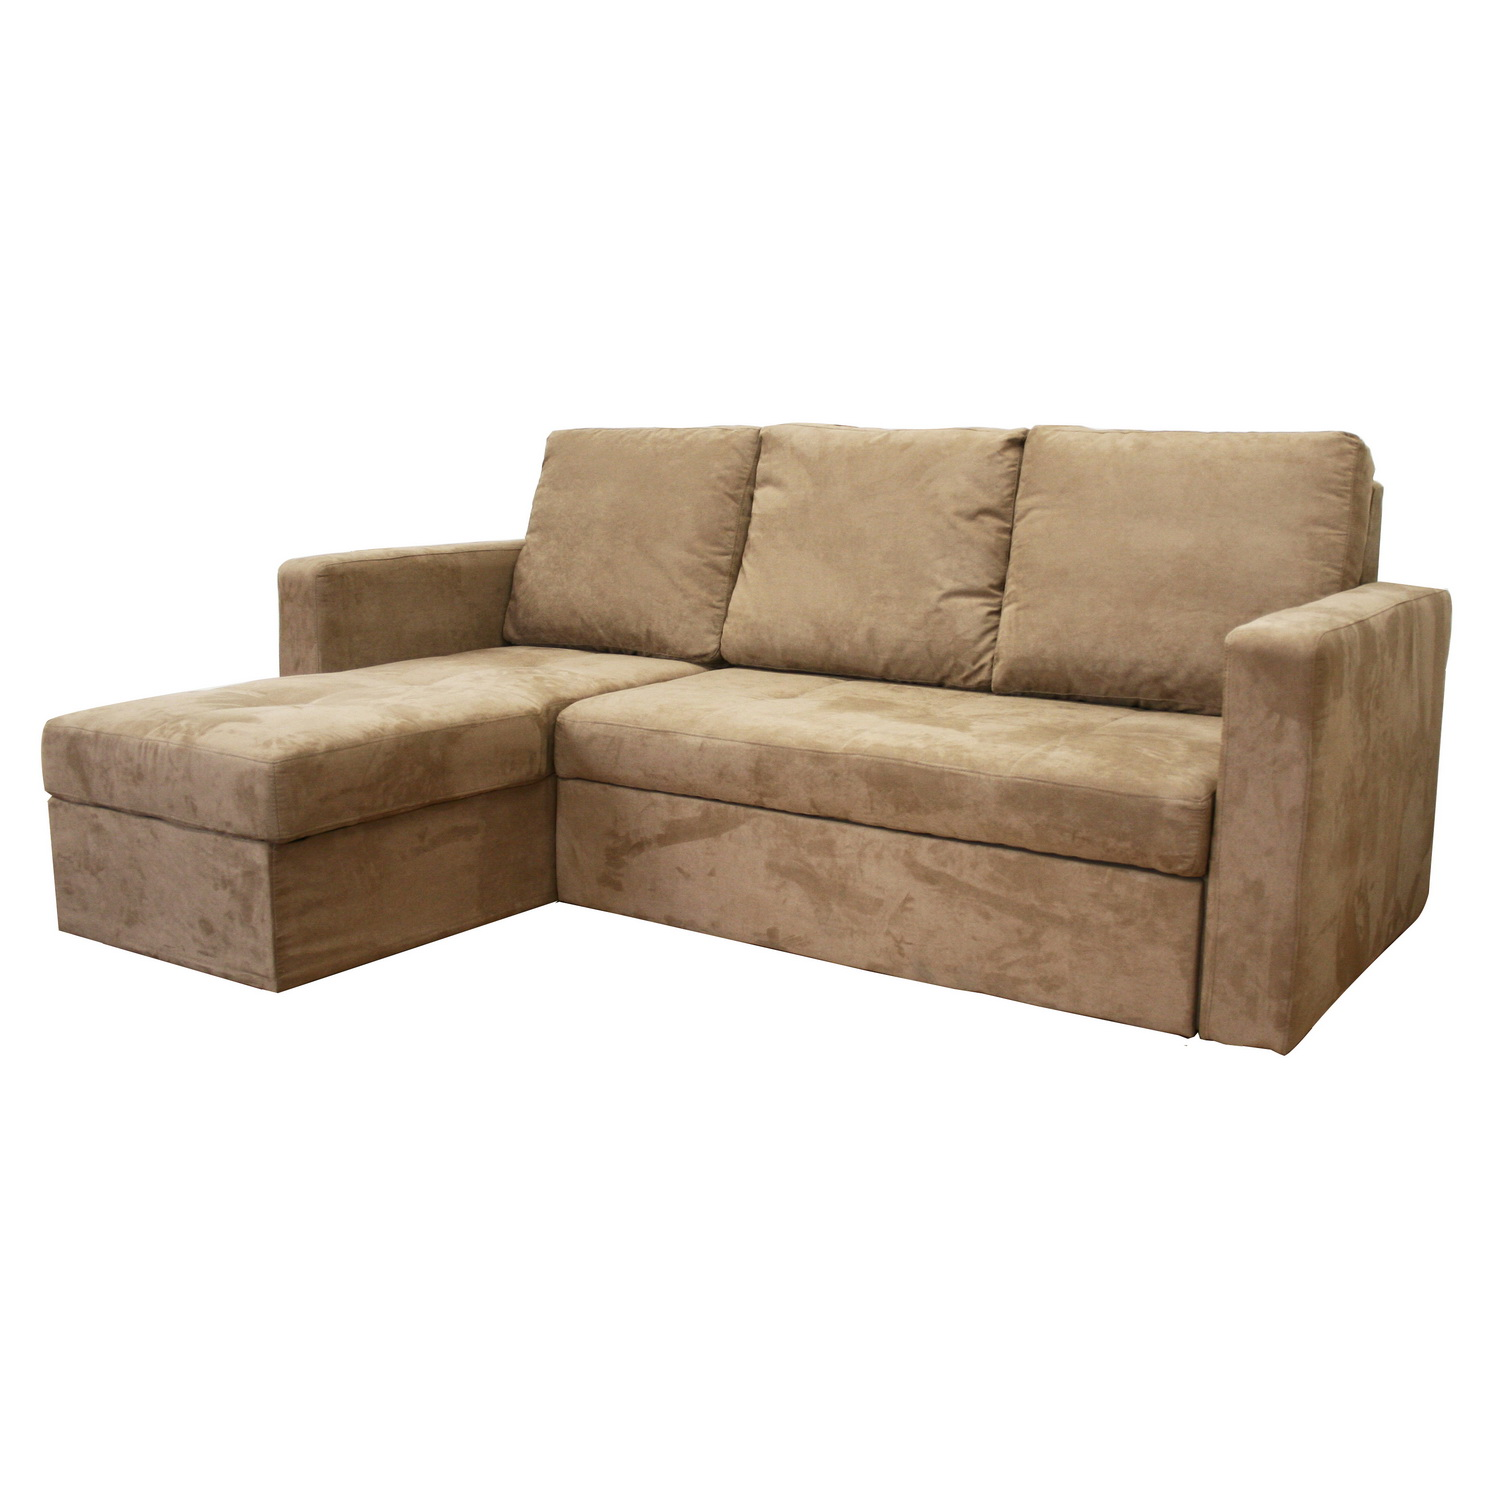 Sofas loveseats Sleeper sofa sectional